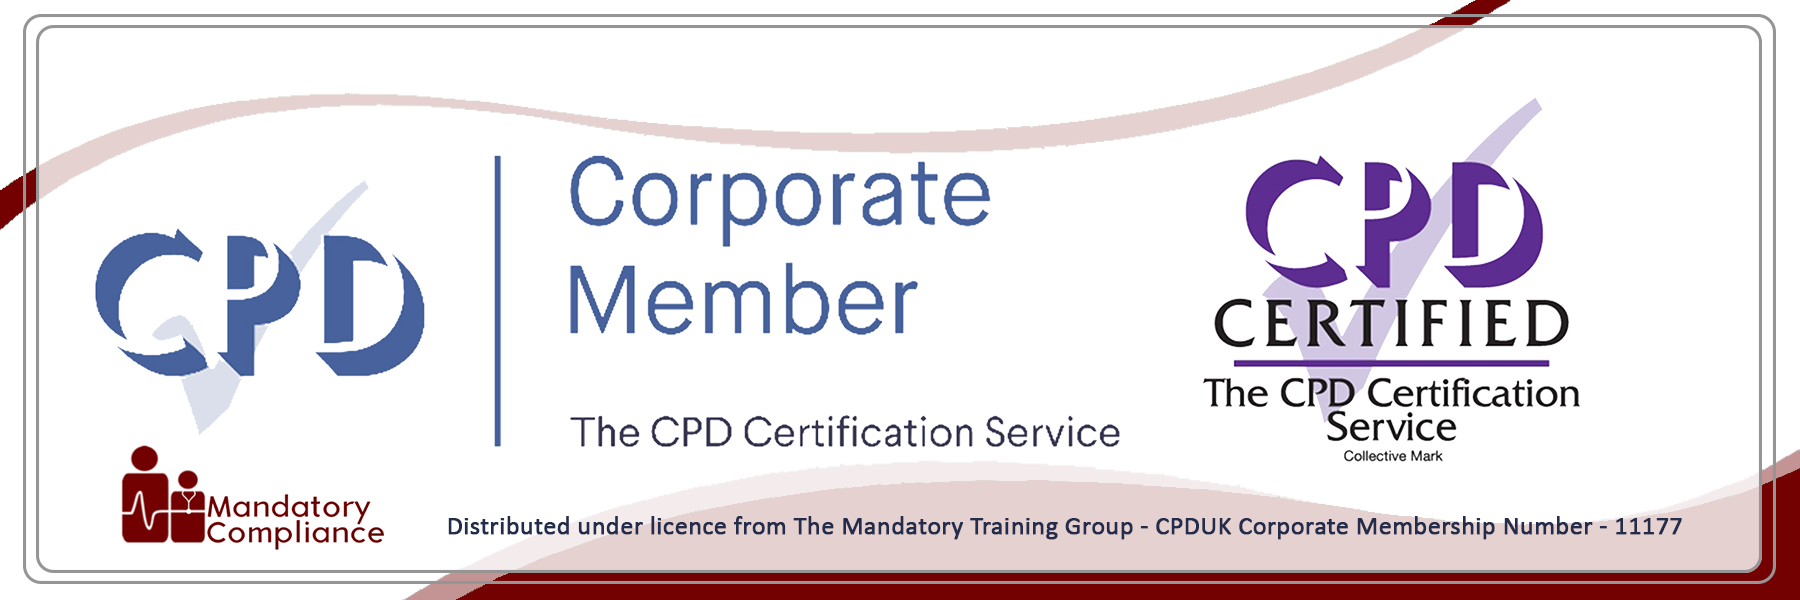 Health and Safety for Volunteers - Online Training Course - CPDUK Accredited - Mandatory Compliance UK -